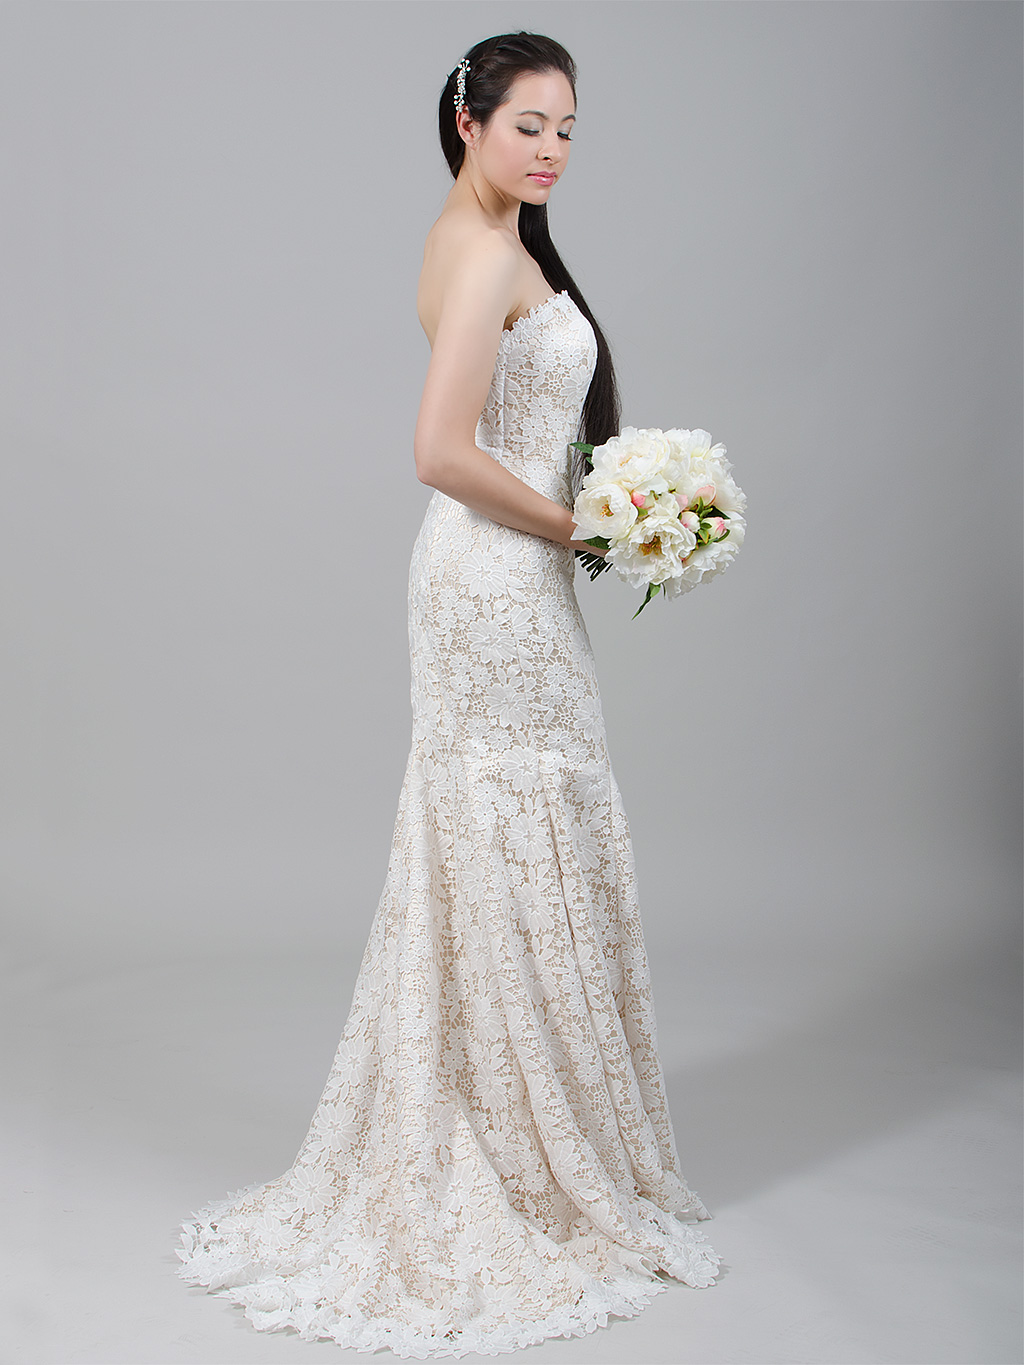 Champagne strapless lace wedding dress with venice lace 4023